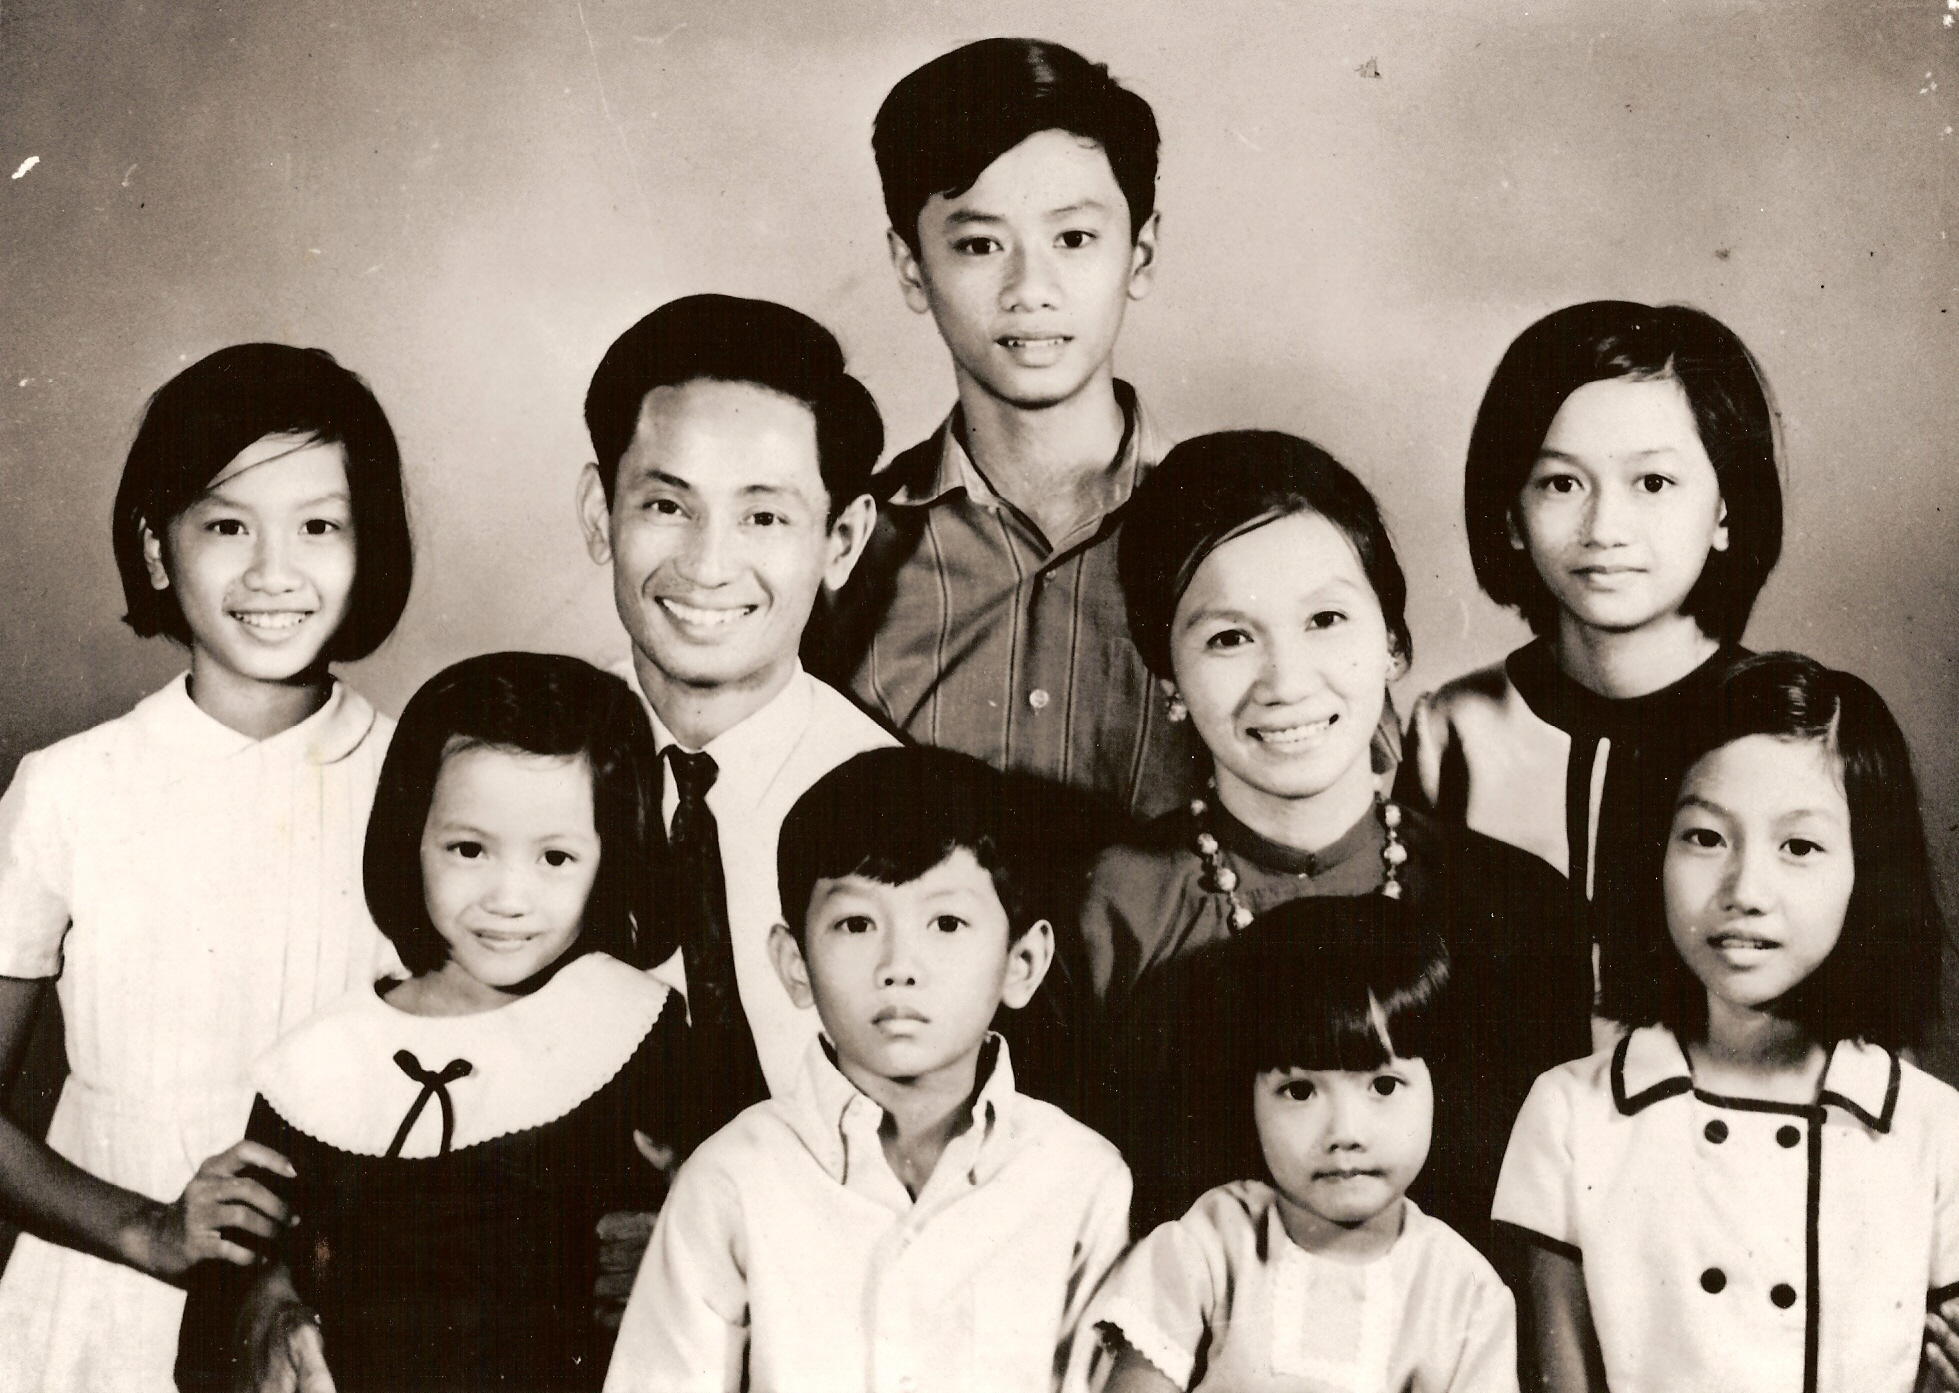 From left to right: Vi Nguyen, Tu (sister), Bong (father), Thiep Nguyen (brother), Khiem (brother), Lan (mother), Tram (sister), Van (sister), Thi (sister).